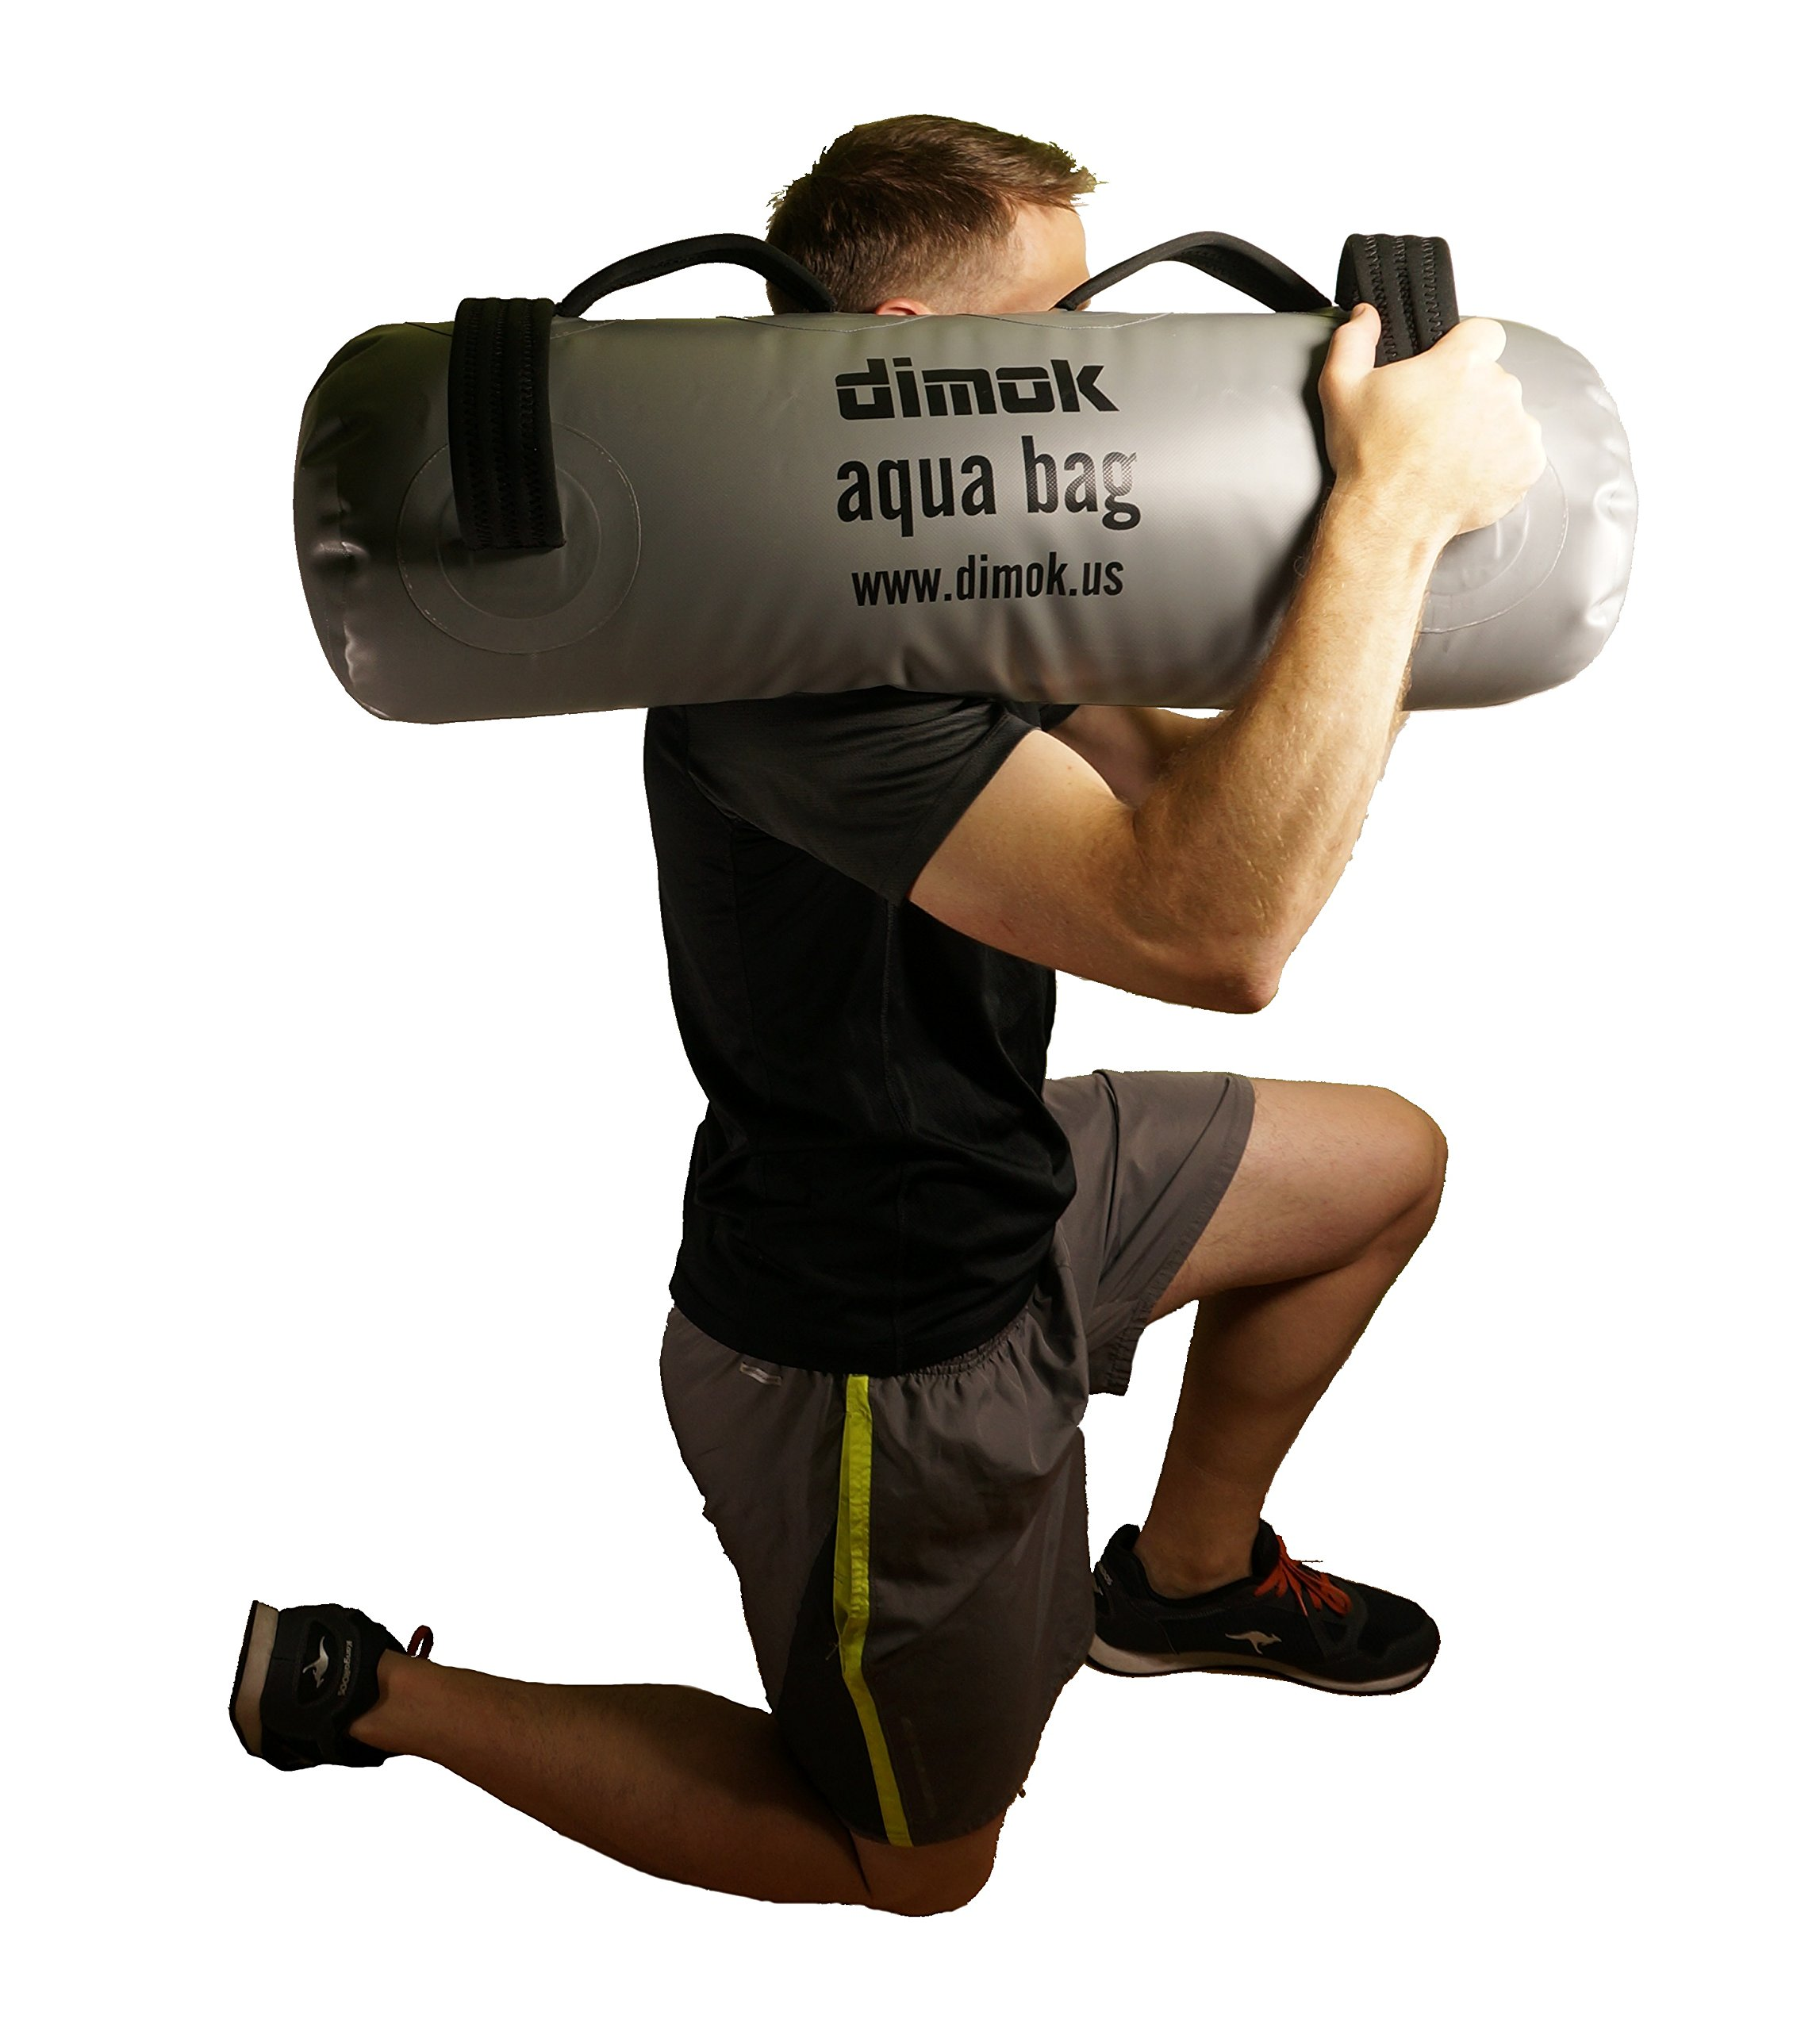 dimok Sandbag Alternative Aqua Bag Training Weight Bag - Adjustable Weights Portable Full Body Workout - Comes with a Foot Pump (79)